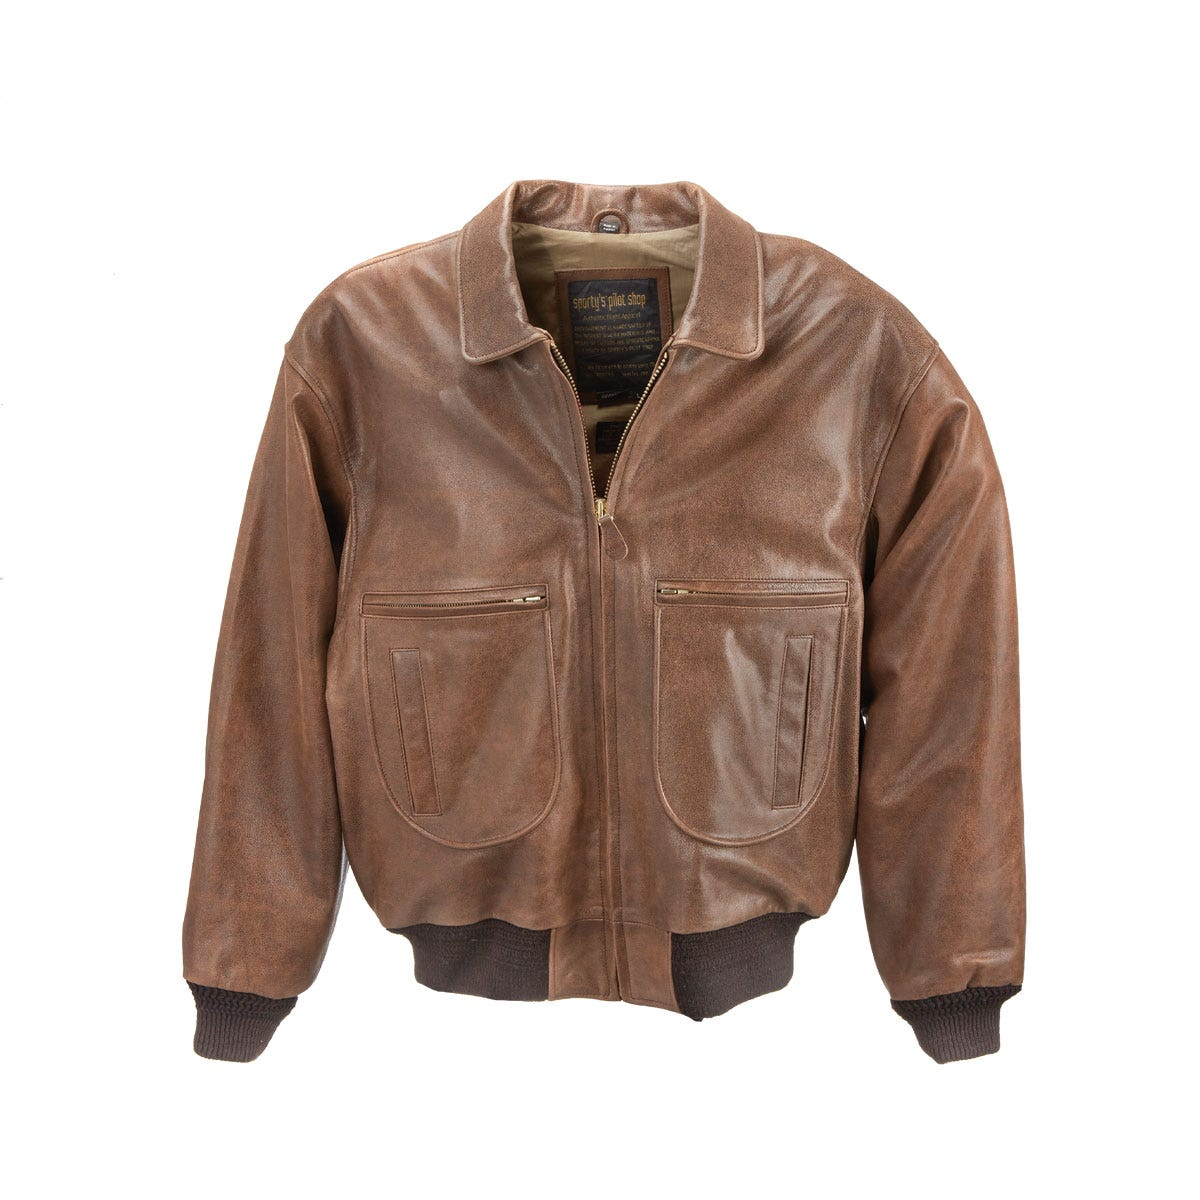 Pilot Wings G-2 Leather Jacket - from Sporty's Pilot Shop